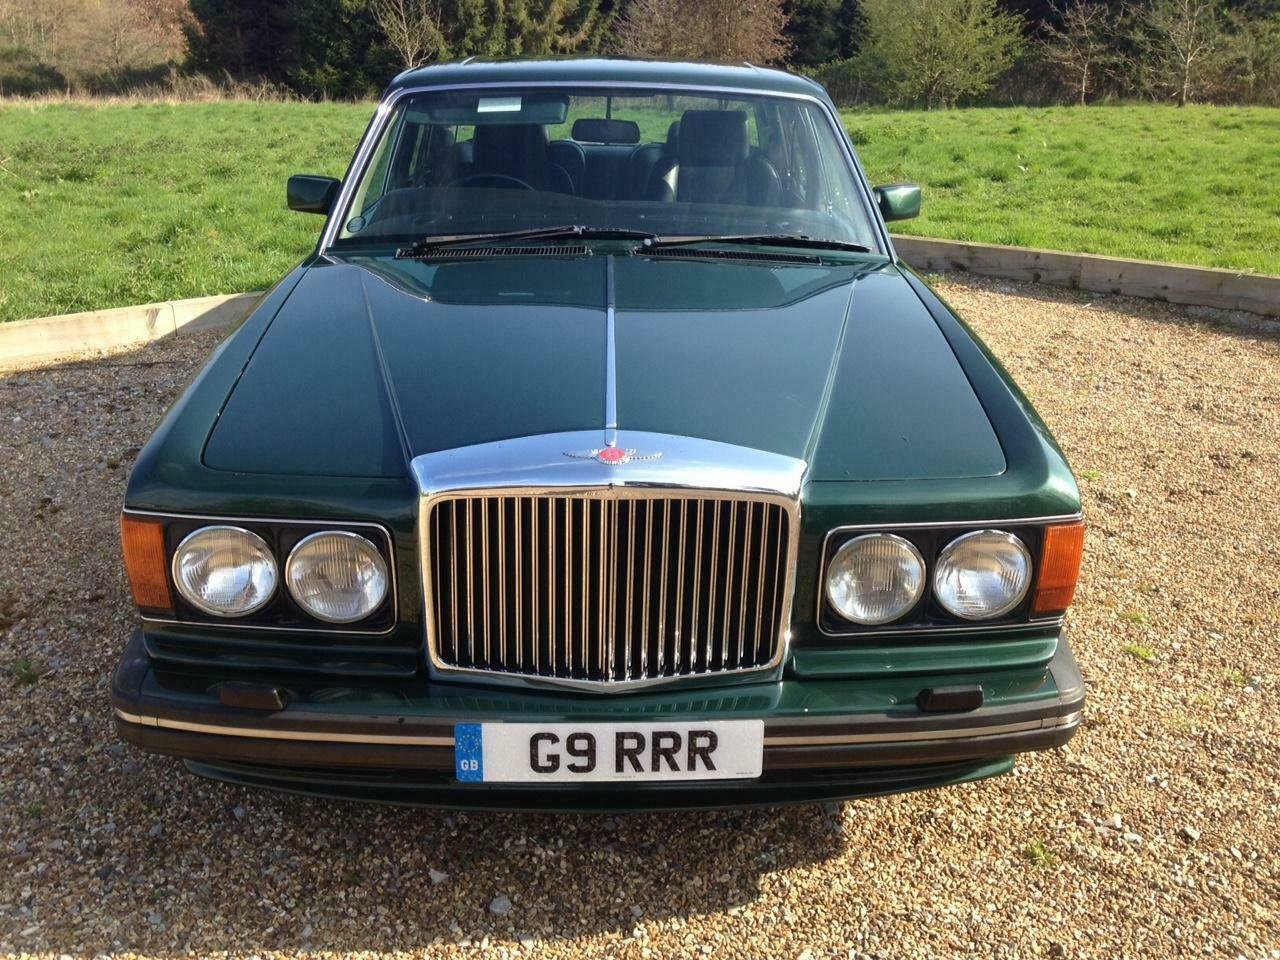 1990 Bentley Turbo R 6.8 auto BRG/Beluga 57k Miles SH Immacu For Sale (picture 2 of 6)